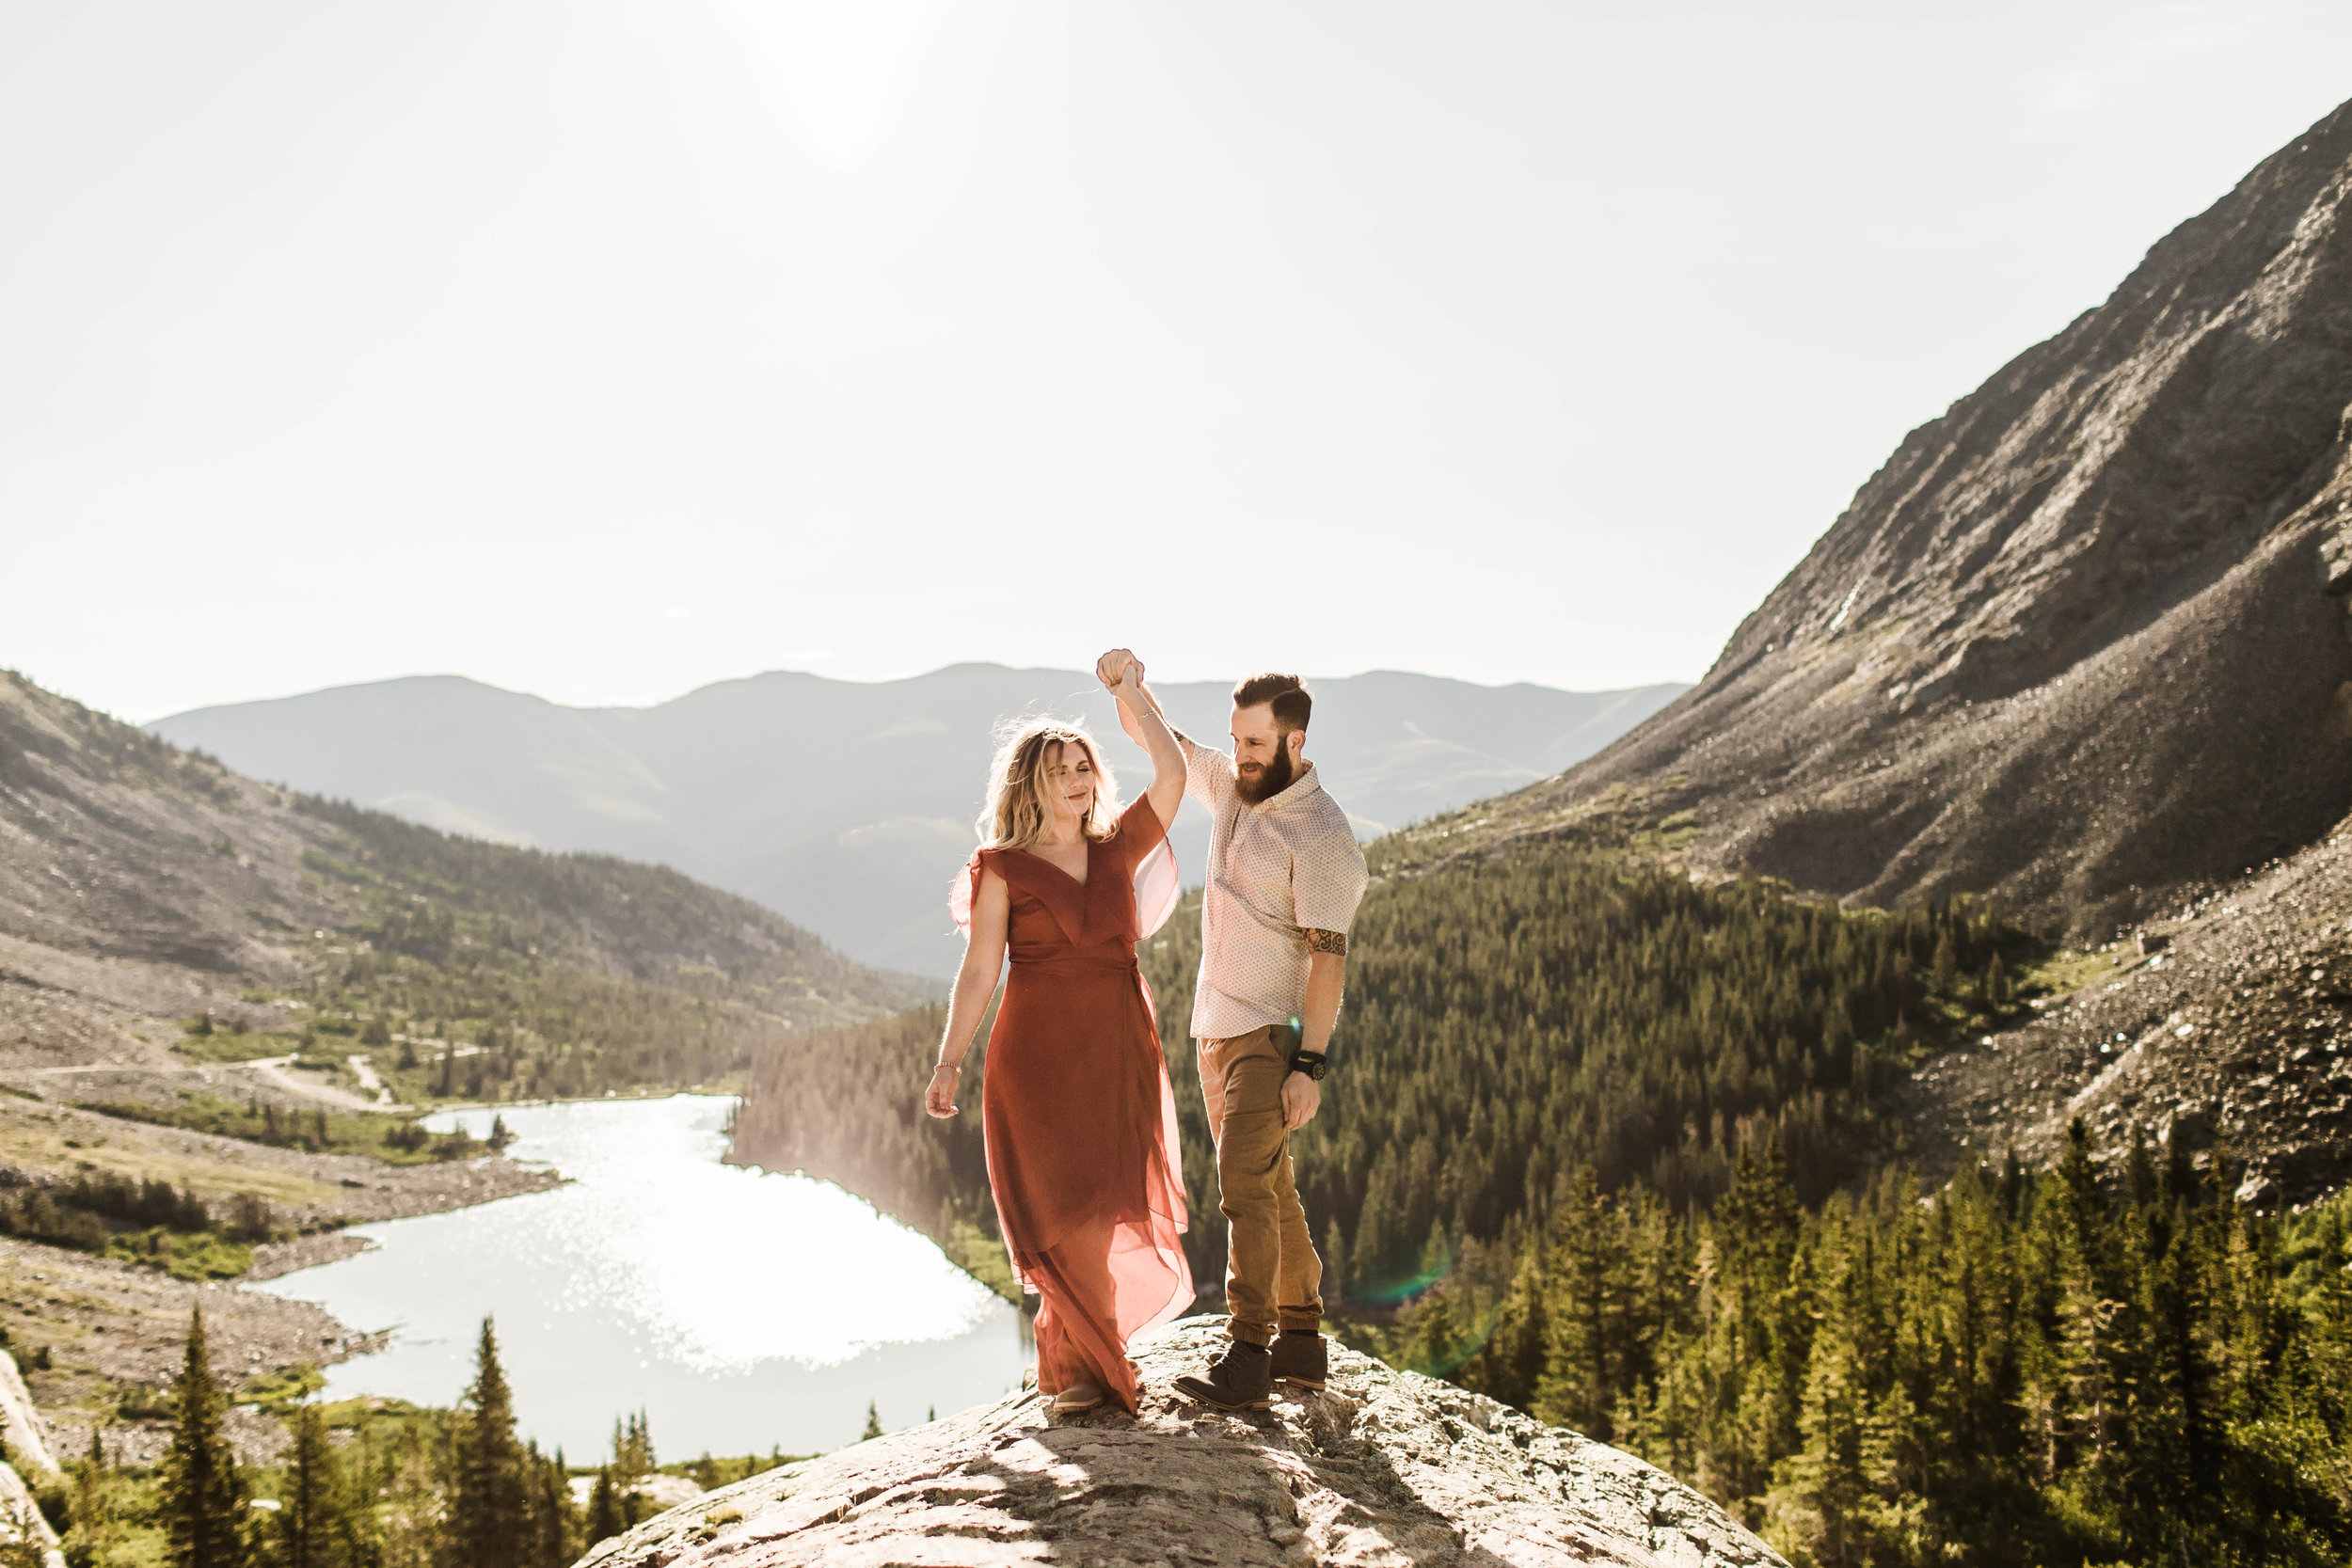 coupling planning to elope in Breckenridge dancing at sunrise on top of a mountain | adventurous Breckenridge wedding photographers